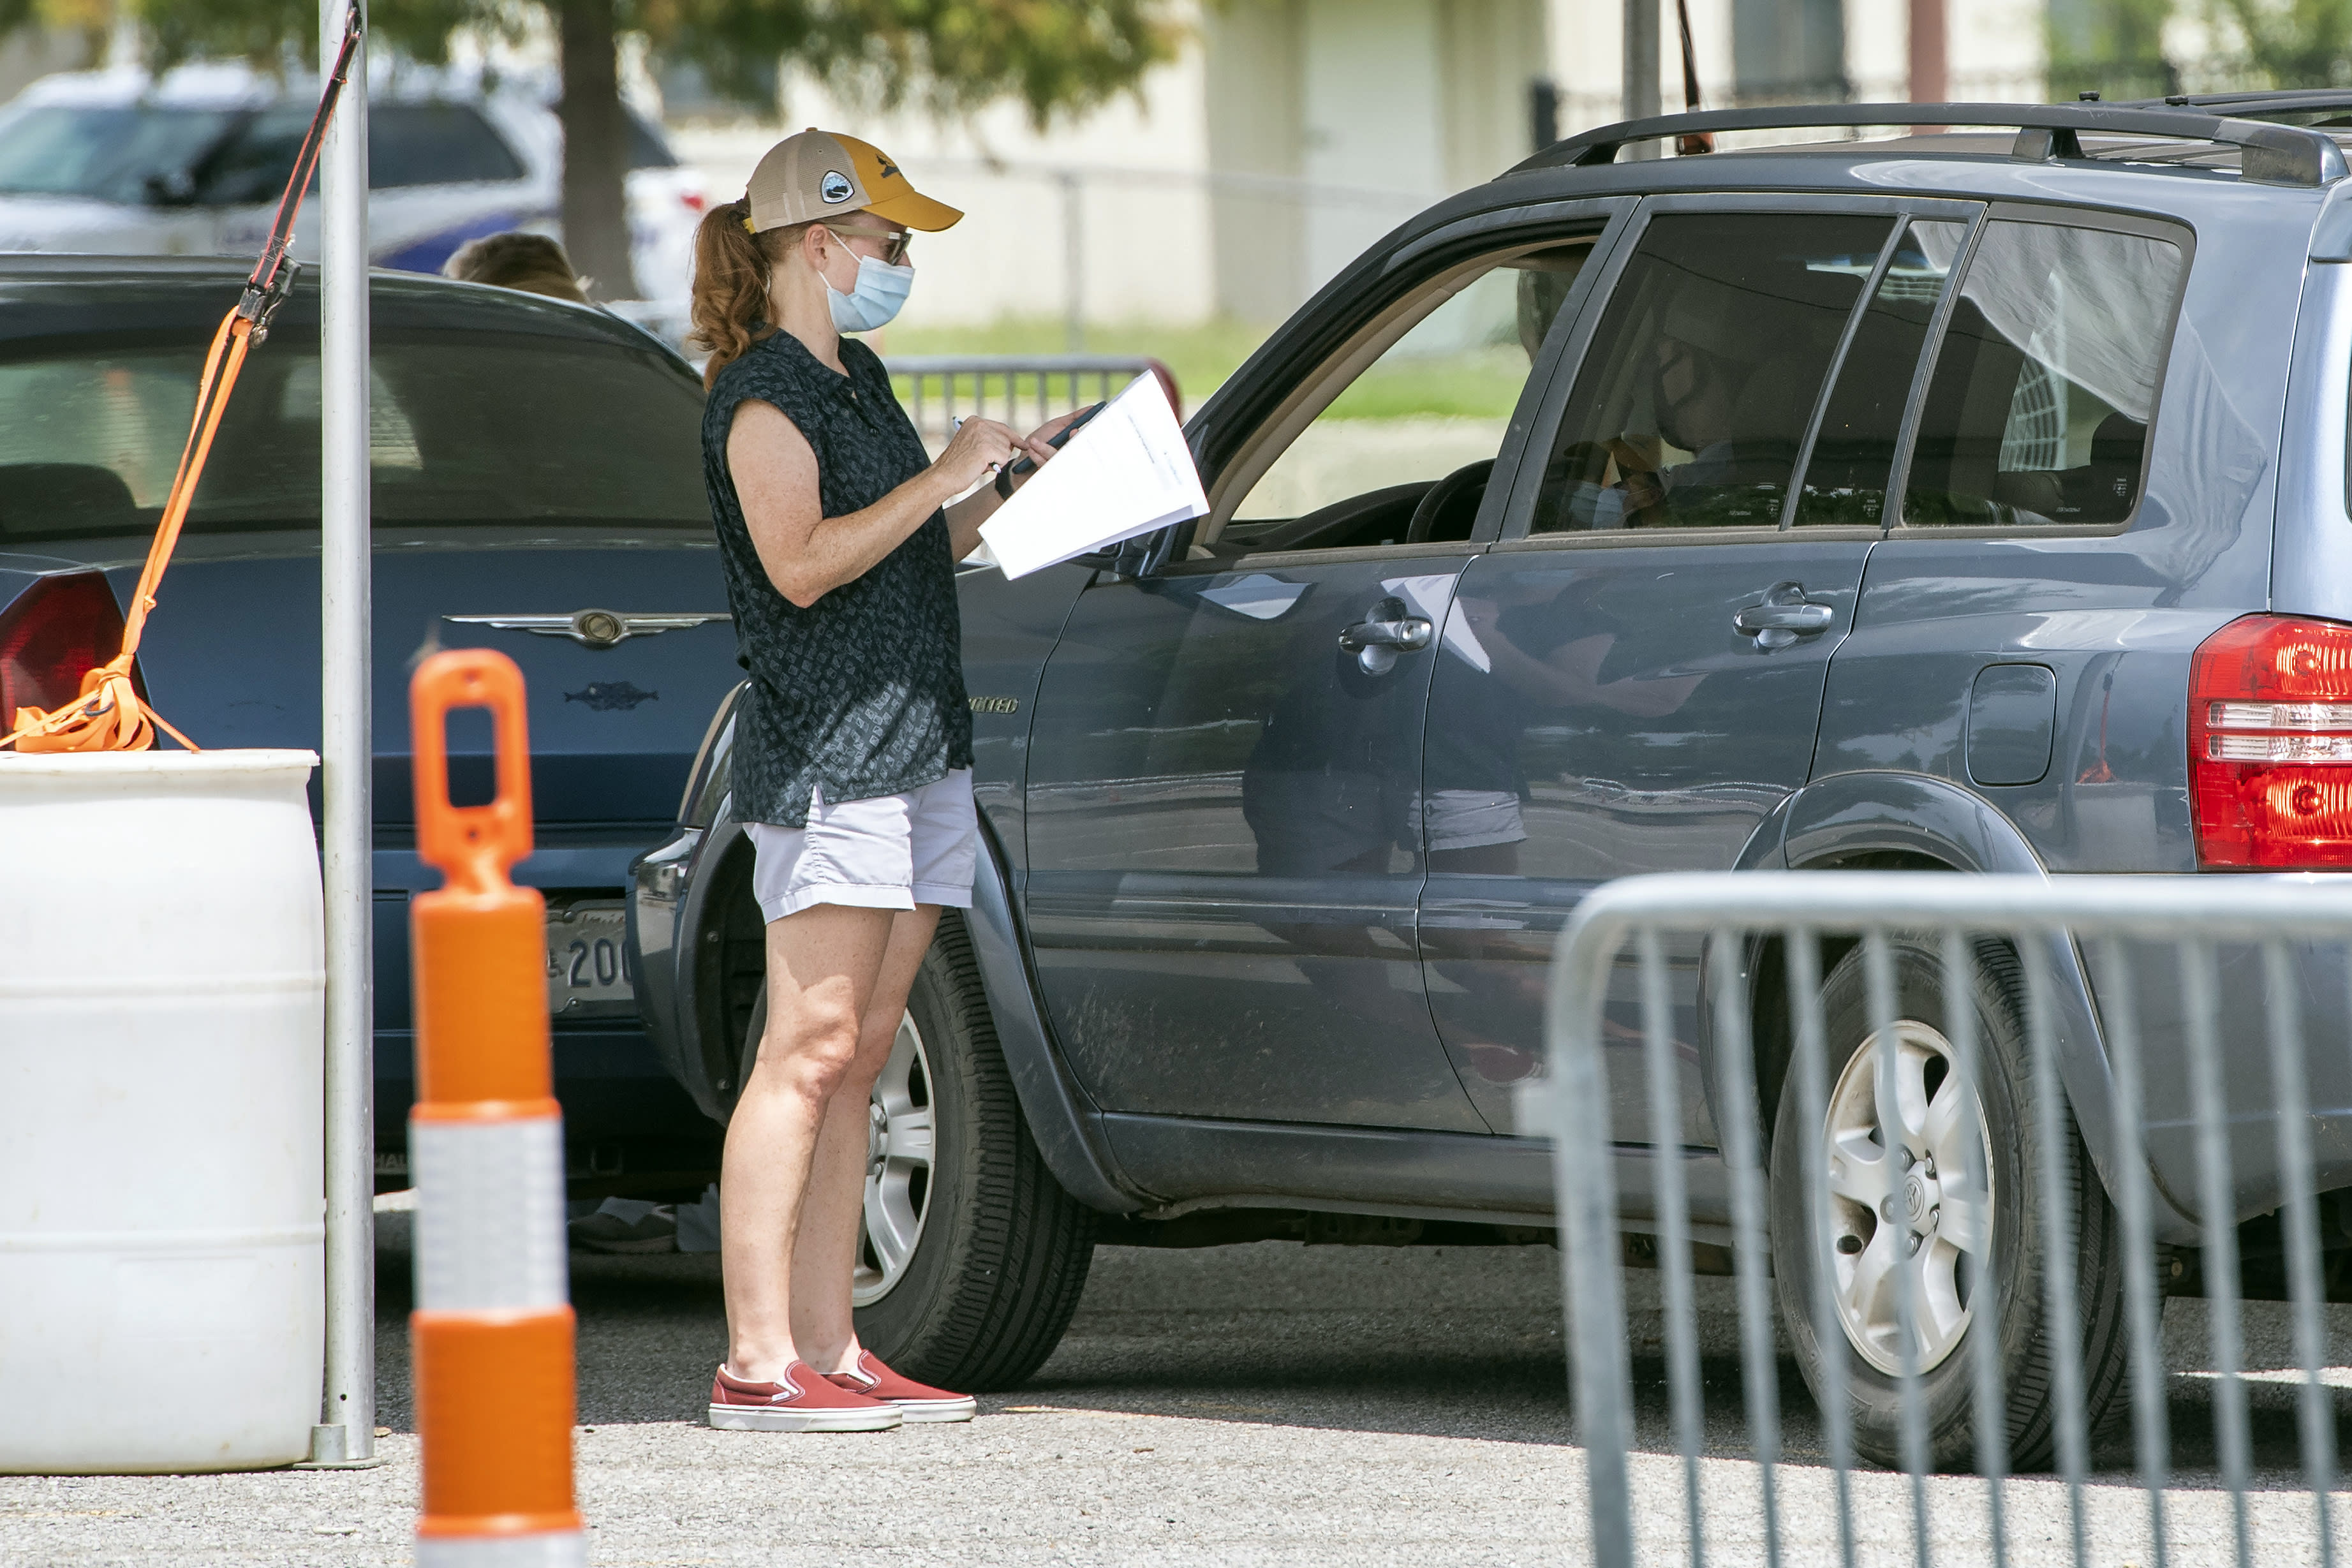 People line up at the Covid-19 testing site at LSU's Alex Box Stadium parking lot, Tuesday July 7, 2020, in Baton Rouge, La. (Bill Feig/The Advocate via AP)